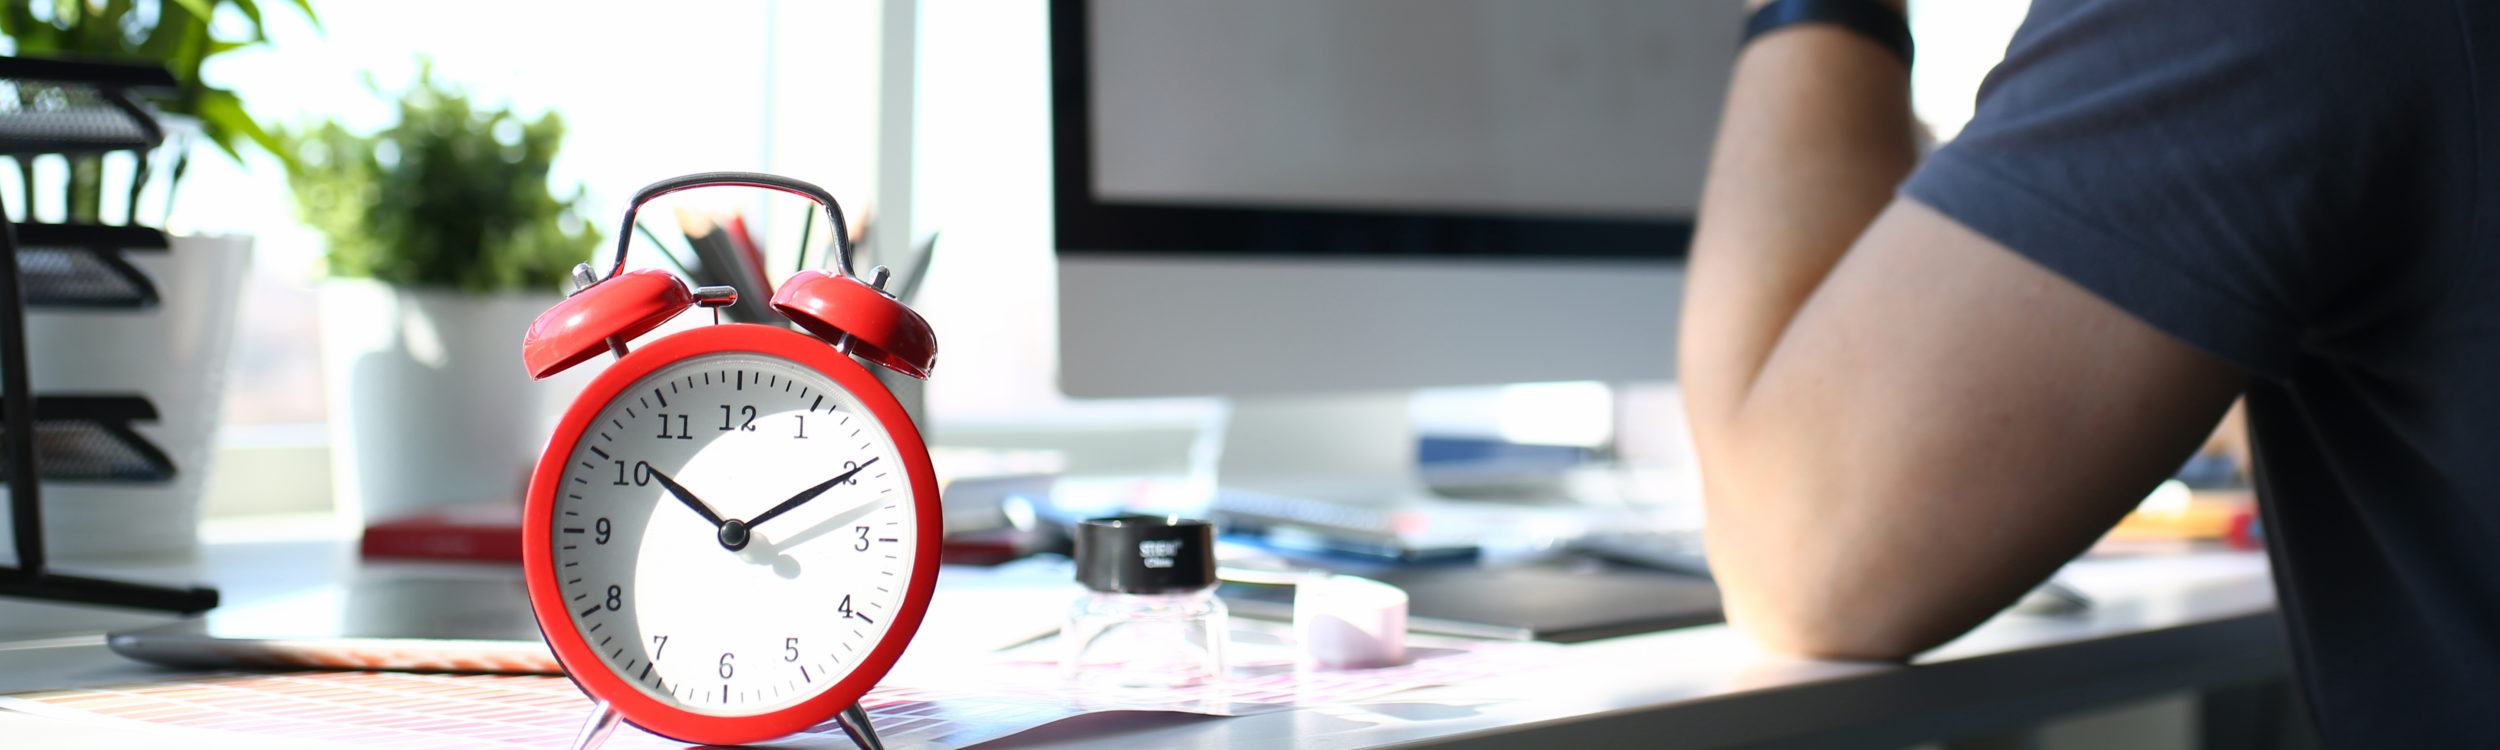 Choosing a Time Management Tool: Important Considerations and Actions to Take featured image